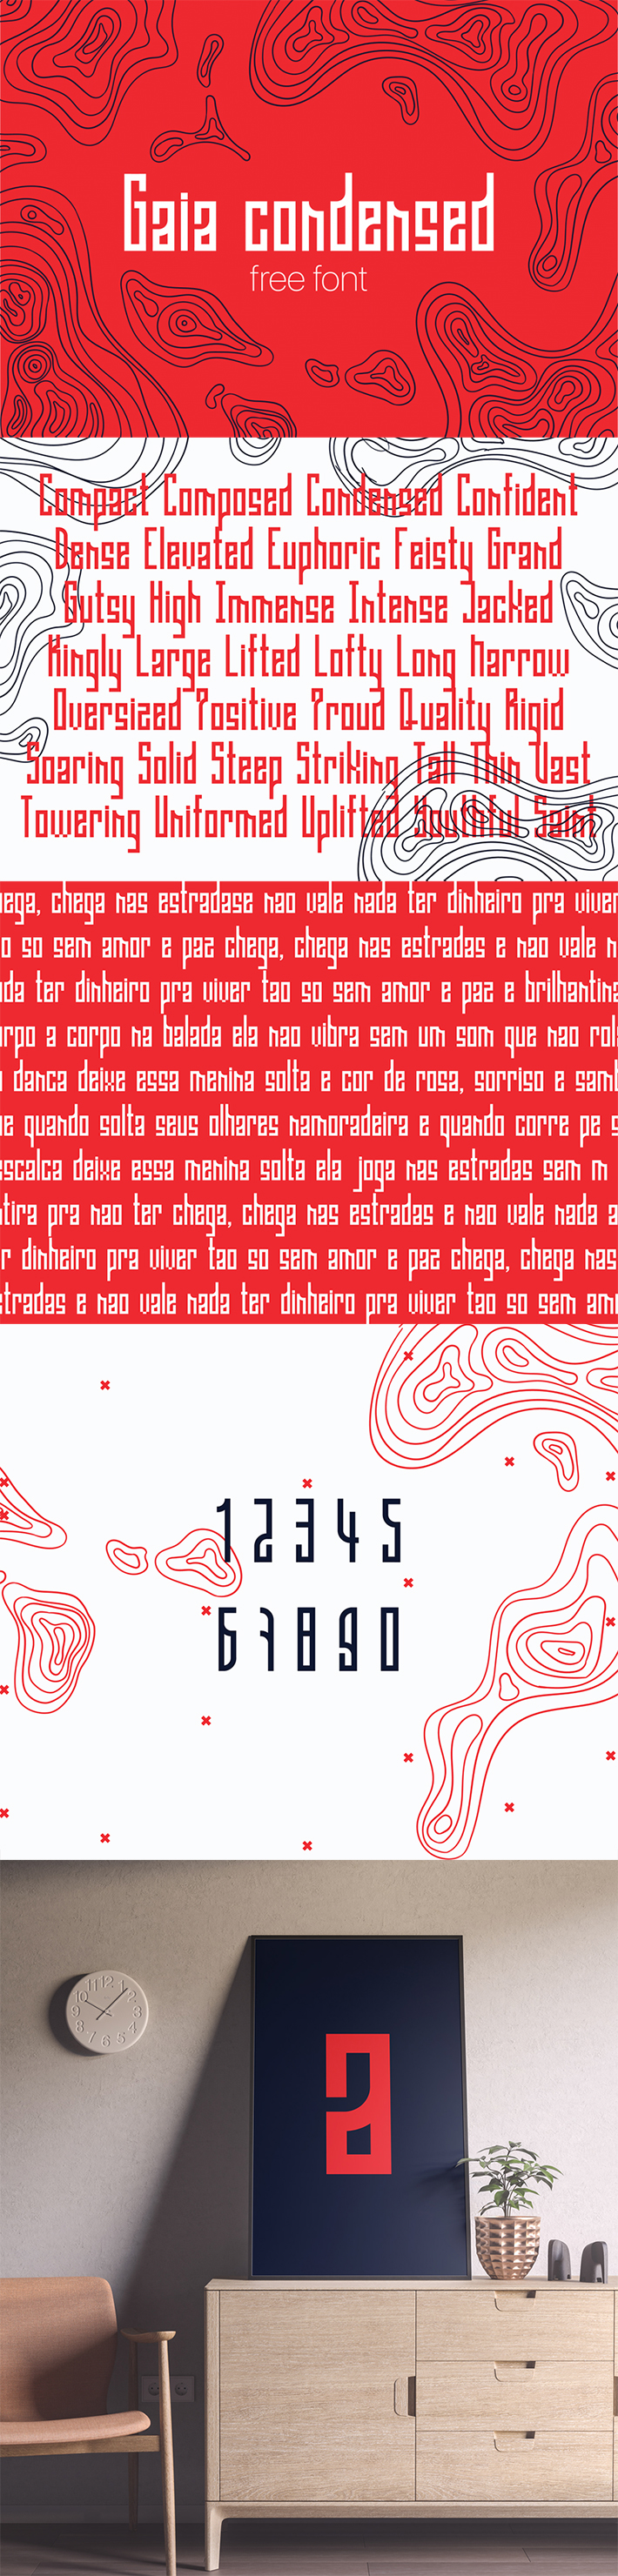 Awesome Gaia Condensed Display Font